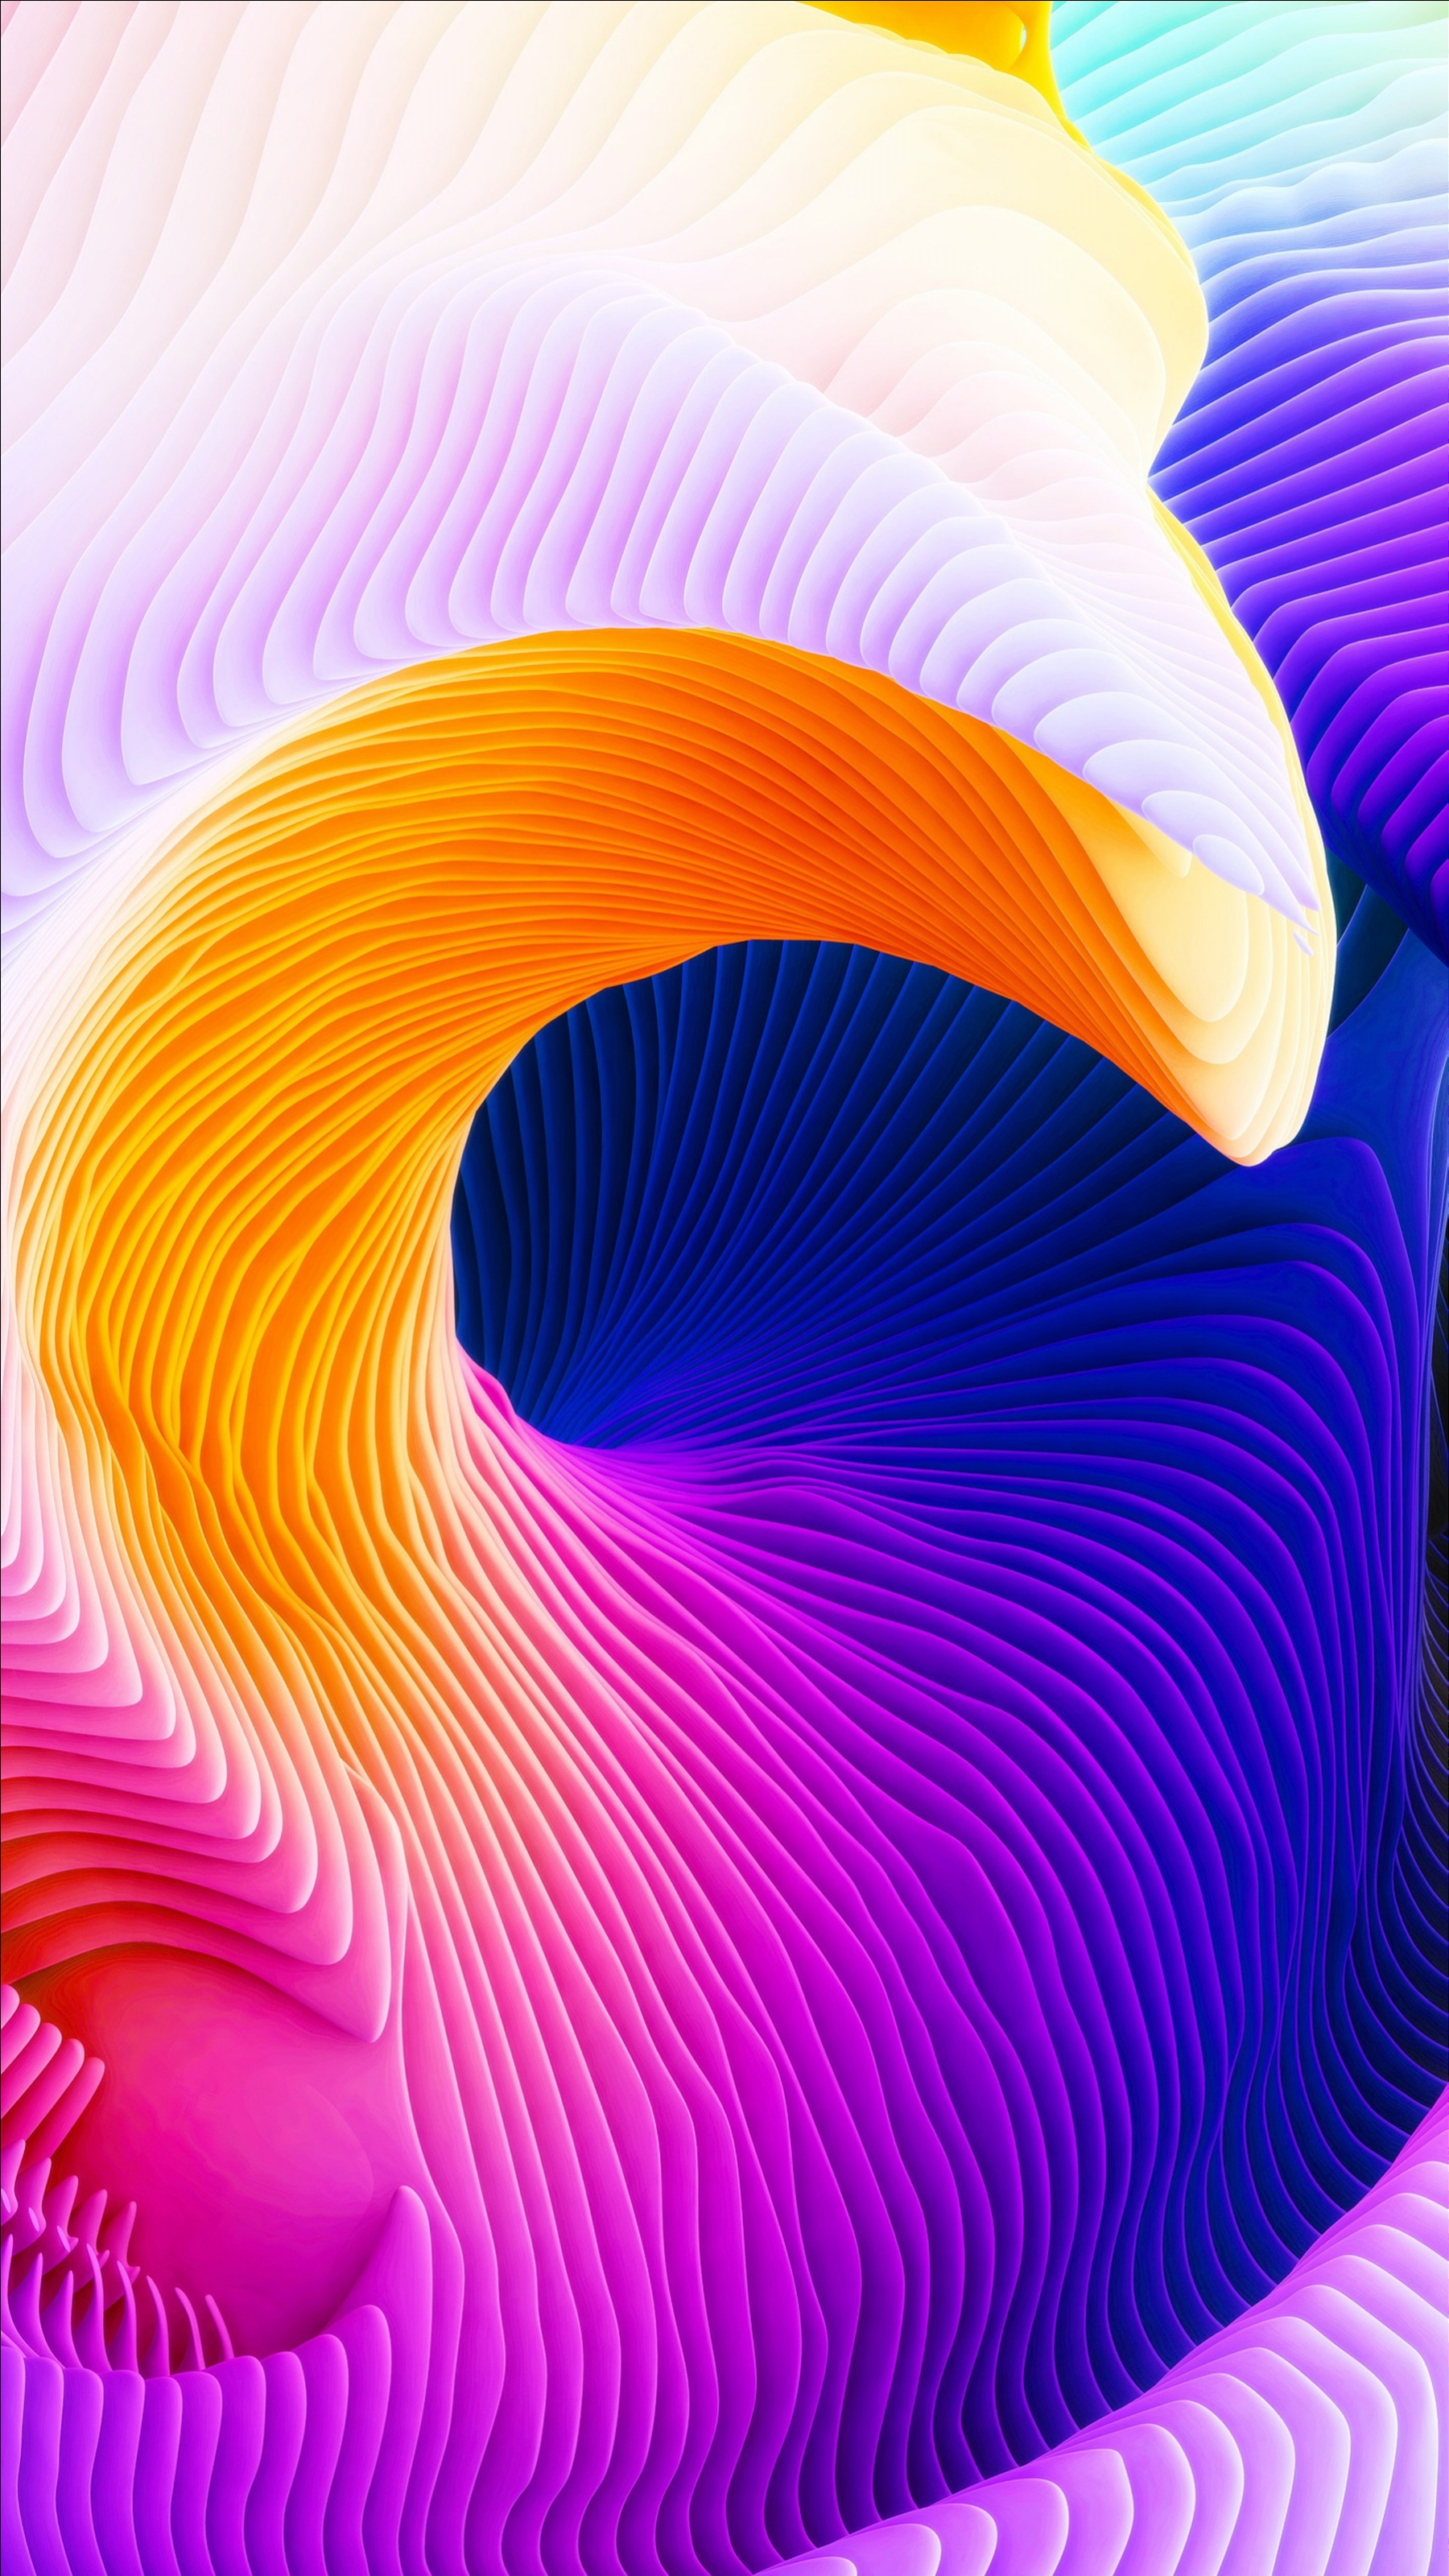 51448 download wallpaper 3D, Surface, Relief, Winding, Sinuous, Raised screensavers and pictures for free